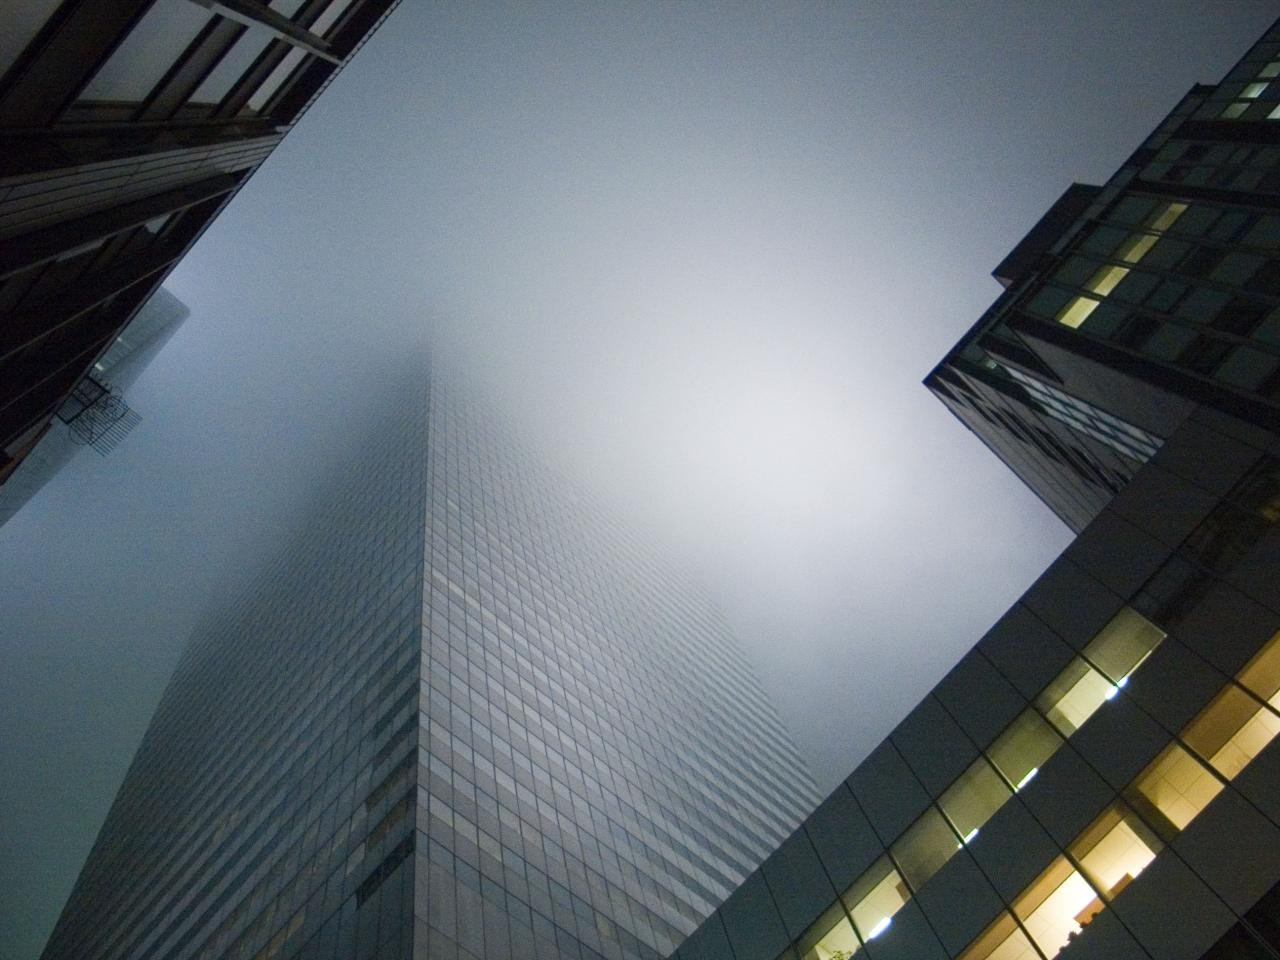 Fog, 2008, digital photograph by Orin Buck.